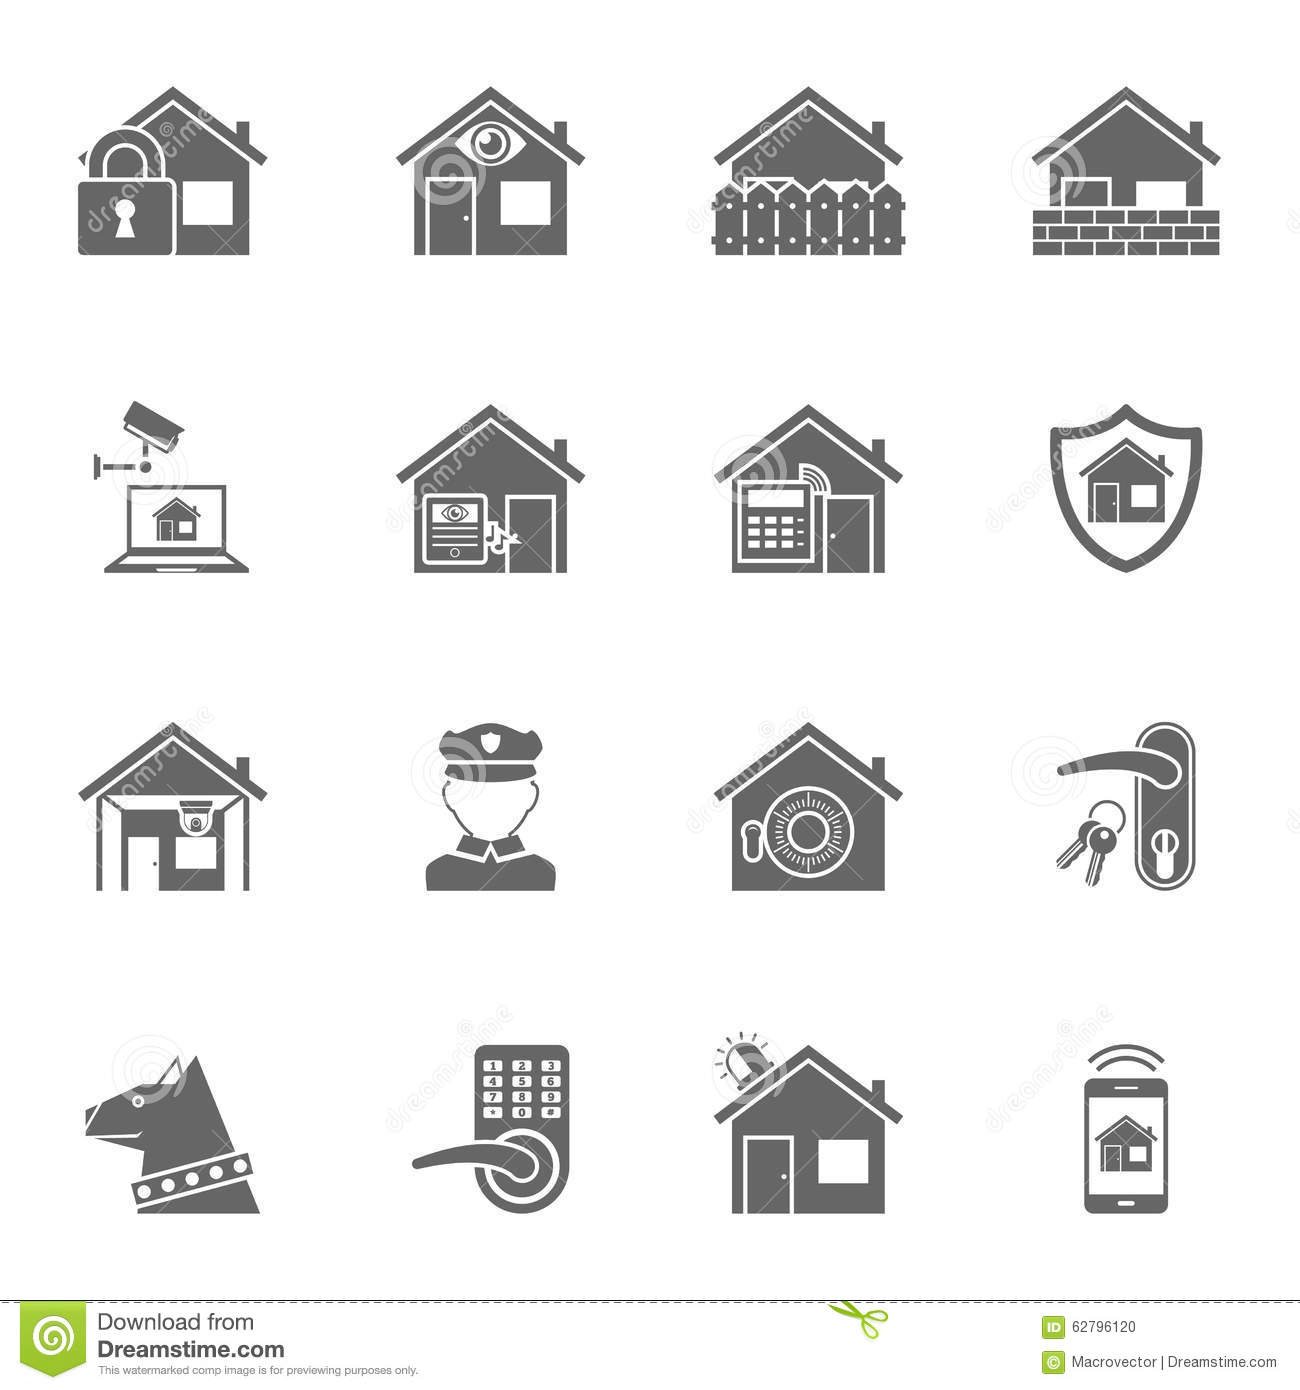 house protection symbols gallery symbols and meanings. Black Bedroom Furniture Sets. Home Design Ideas